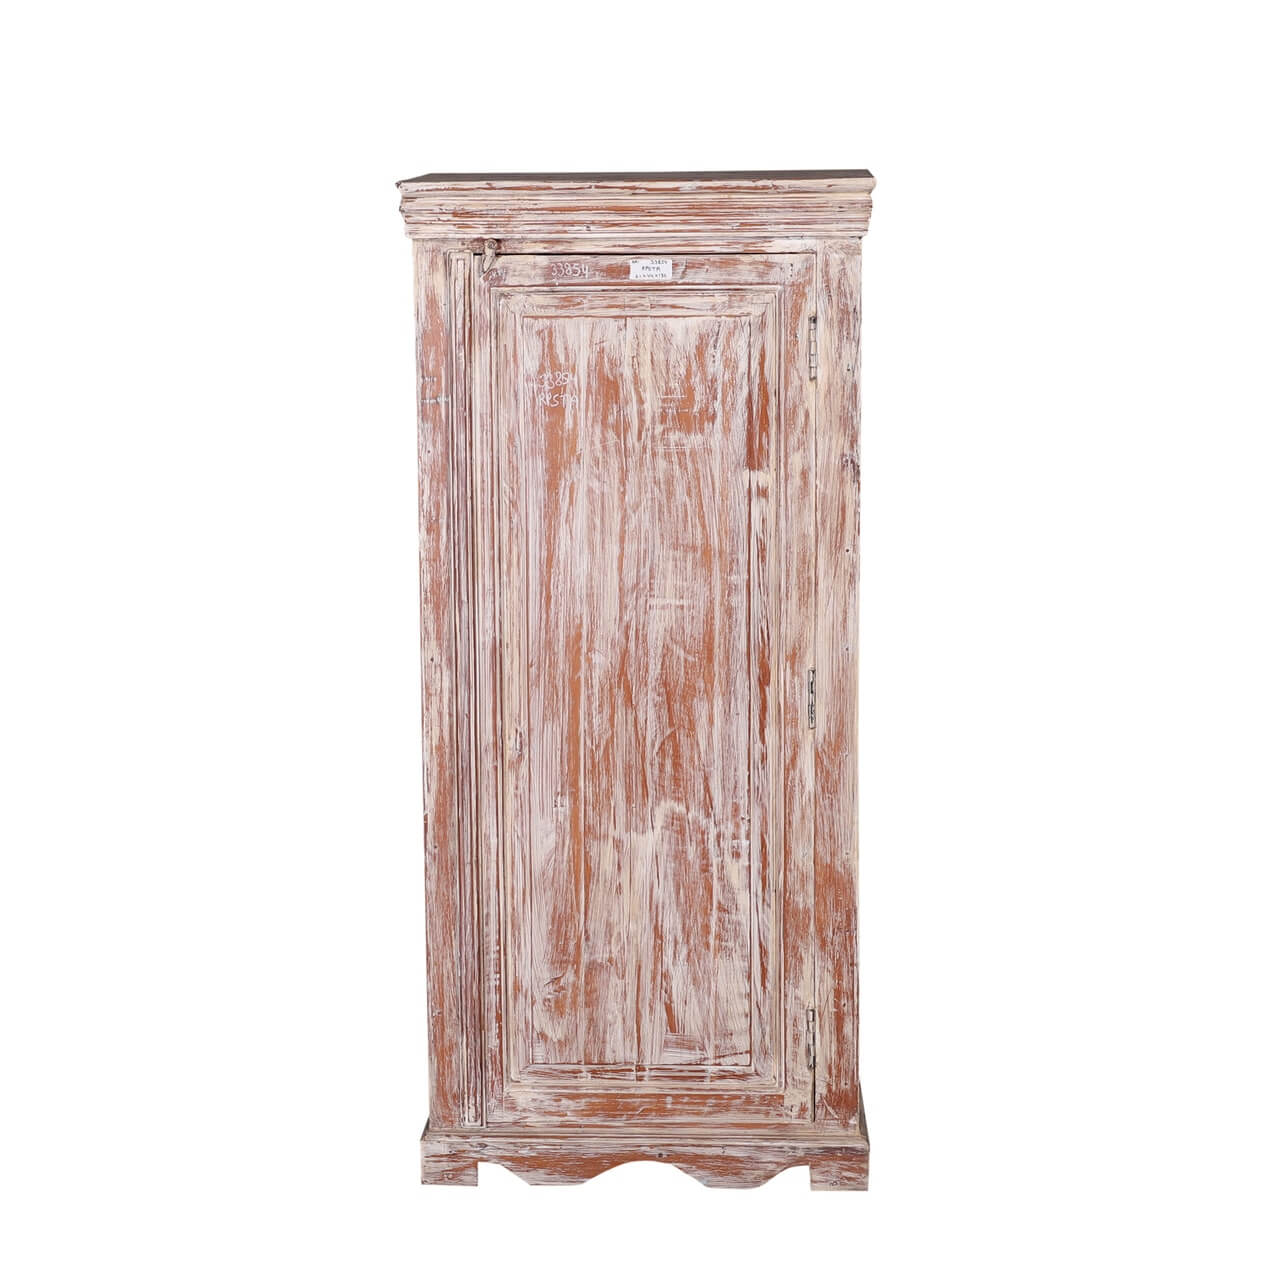 Cokeville Distressed Reclaimed Wood Single Door Storage Cabinet